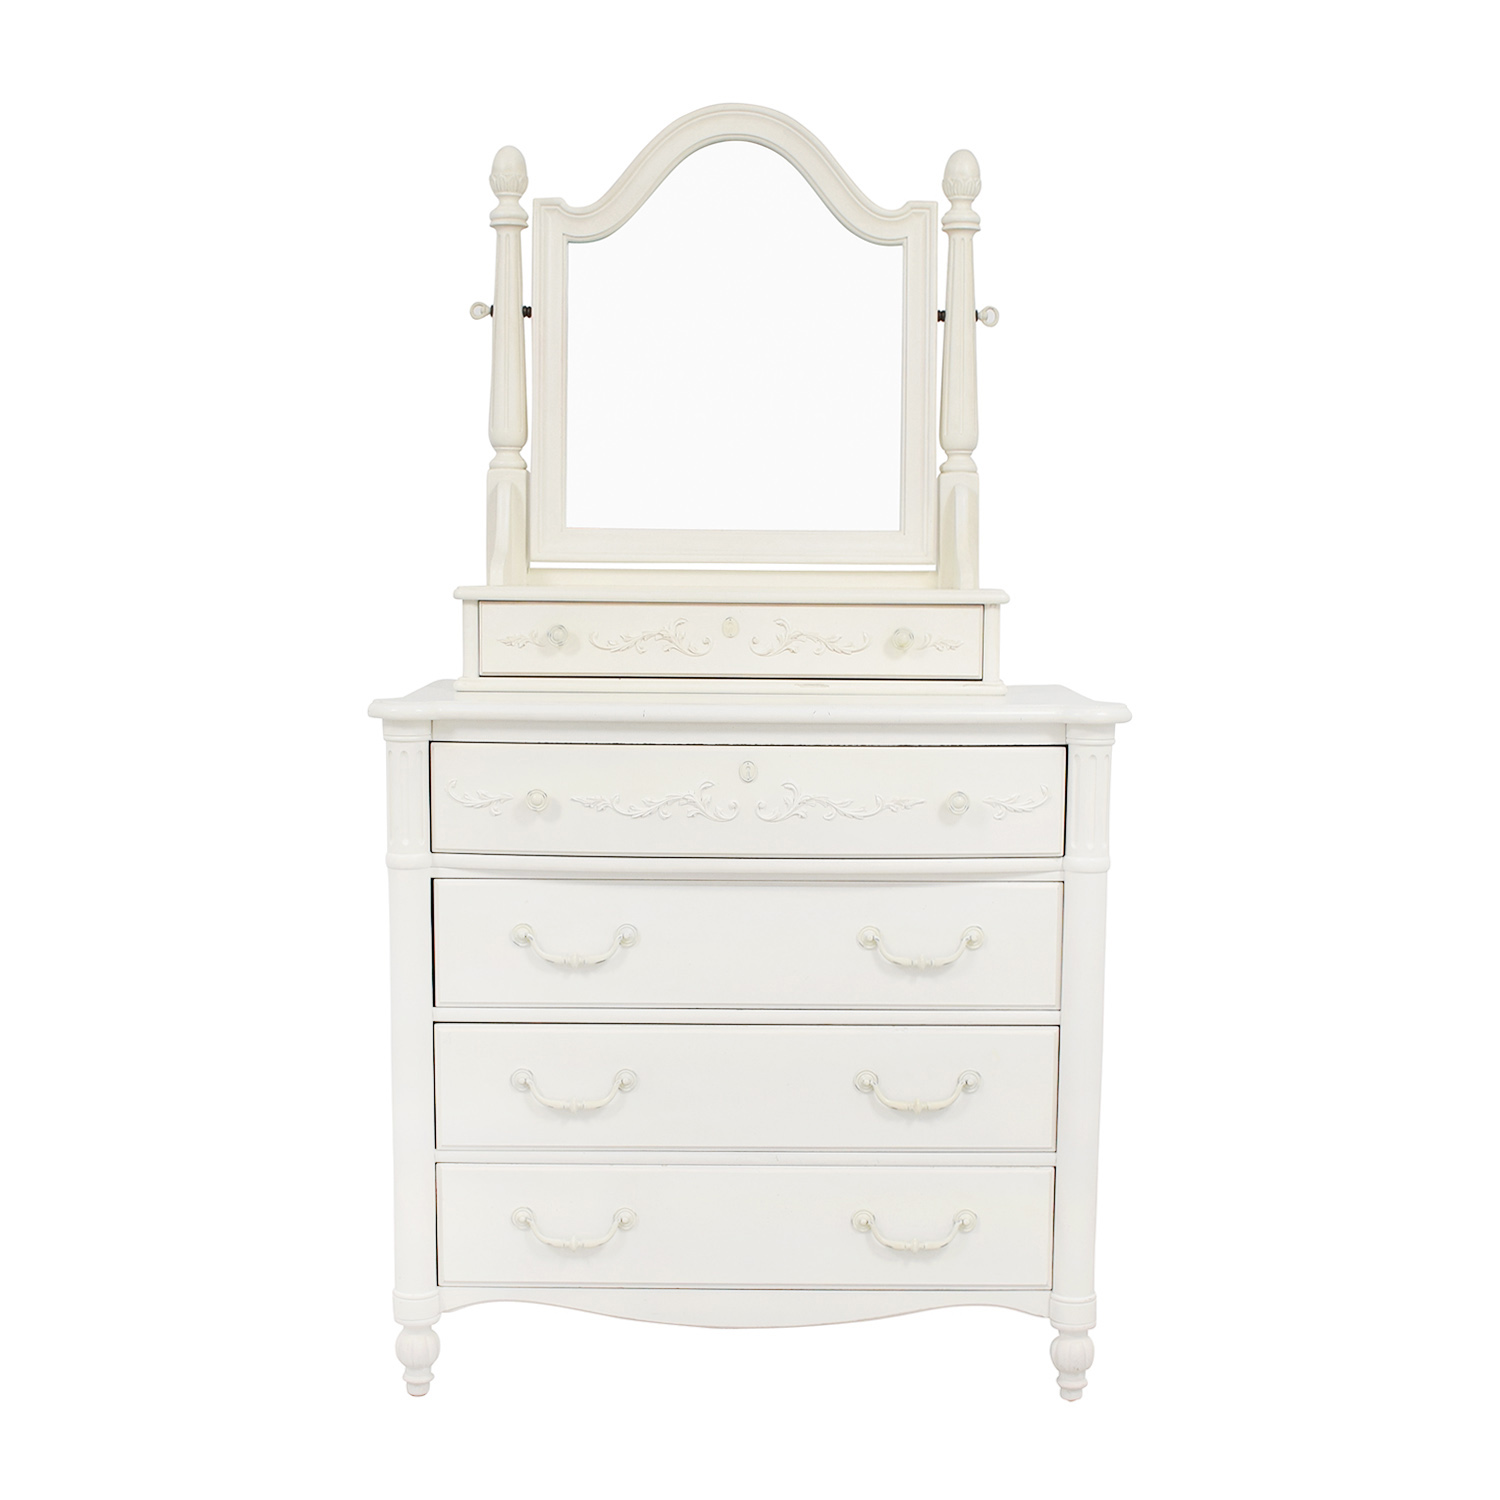 Stanley Furniture Stanley Furniture Isabella White Dressing Chest with Mirror white